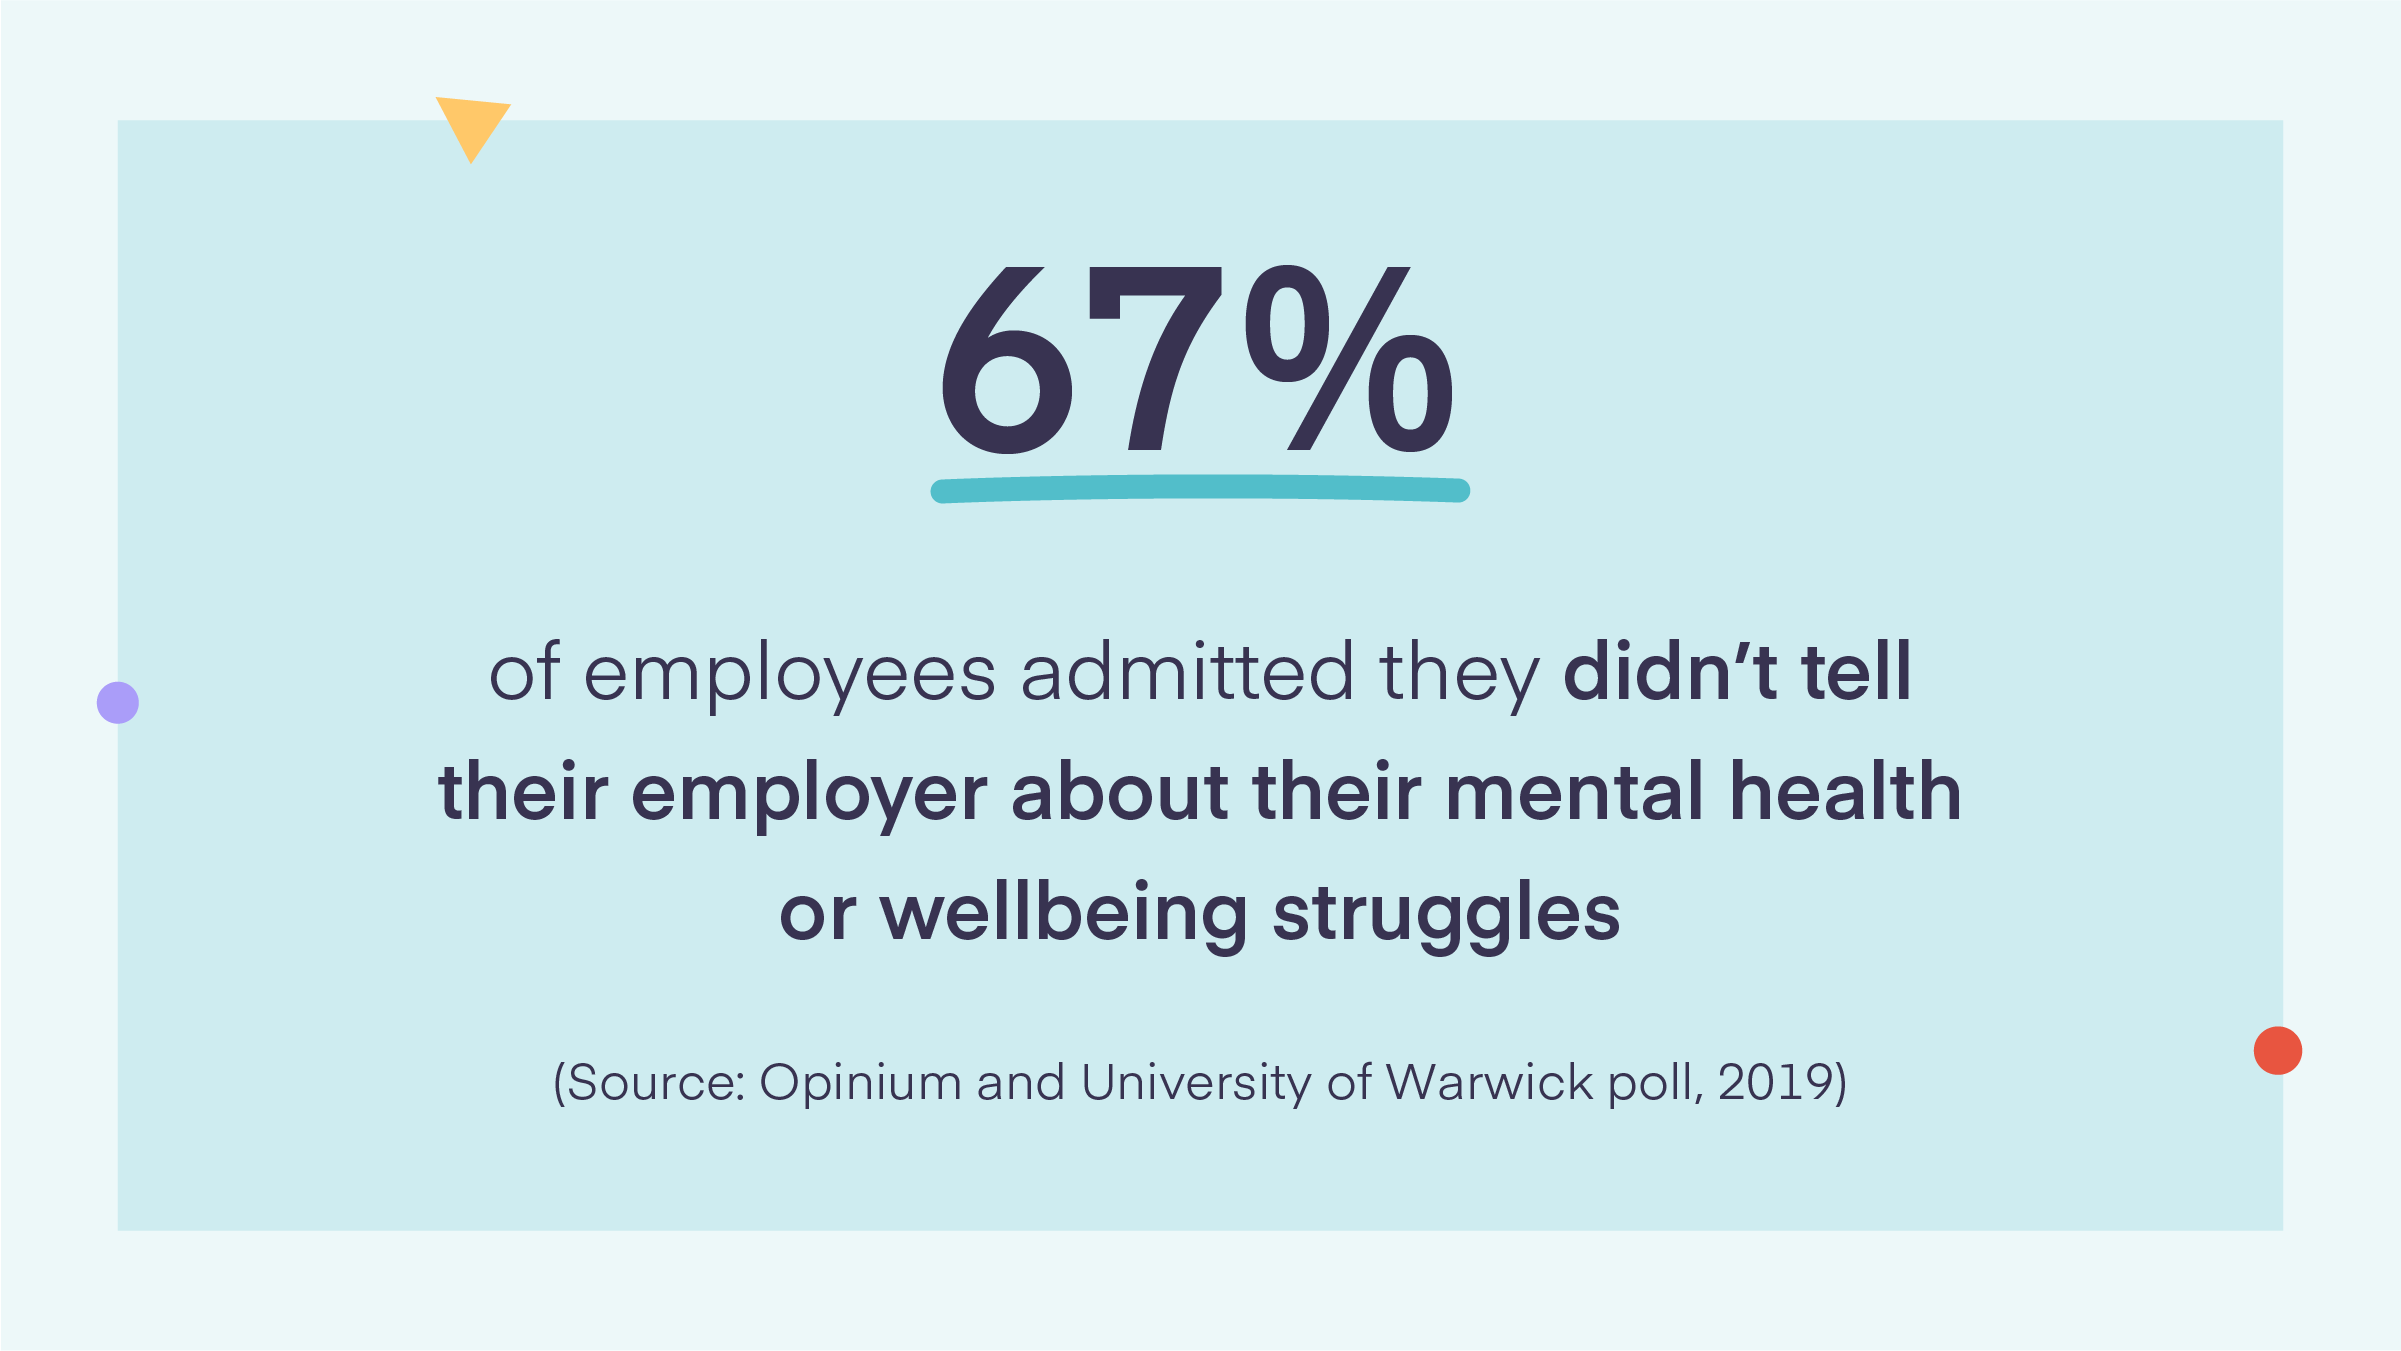 67% of employees admitted they didn't tell their employer about their mental health or wellbeing struggles